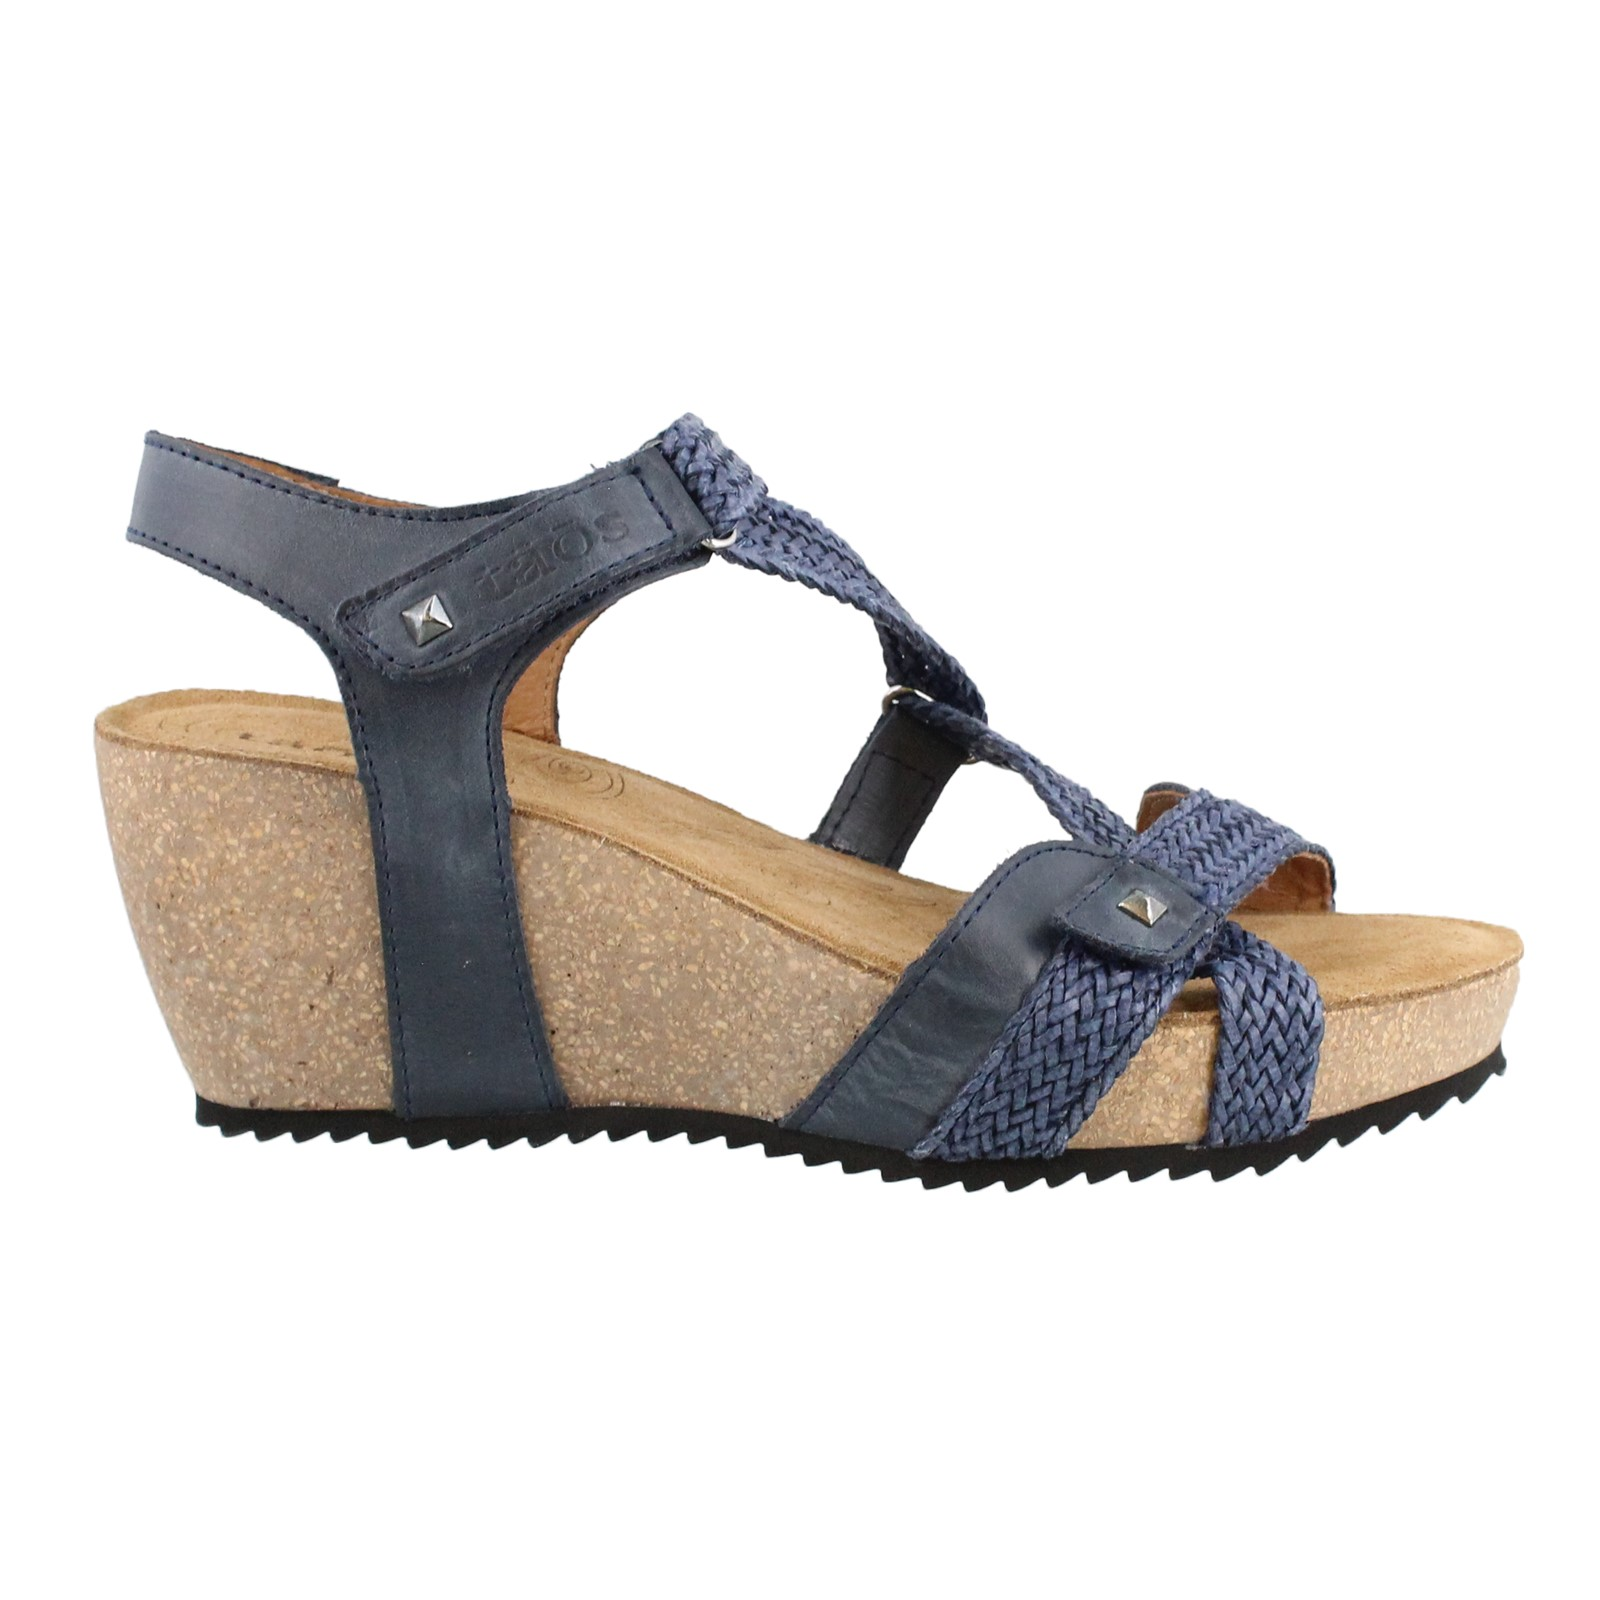 Women's Taos, Julia Mid Heel Wedge Sandals